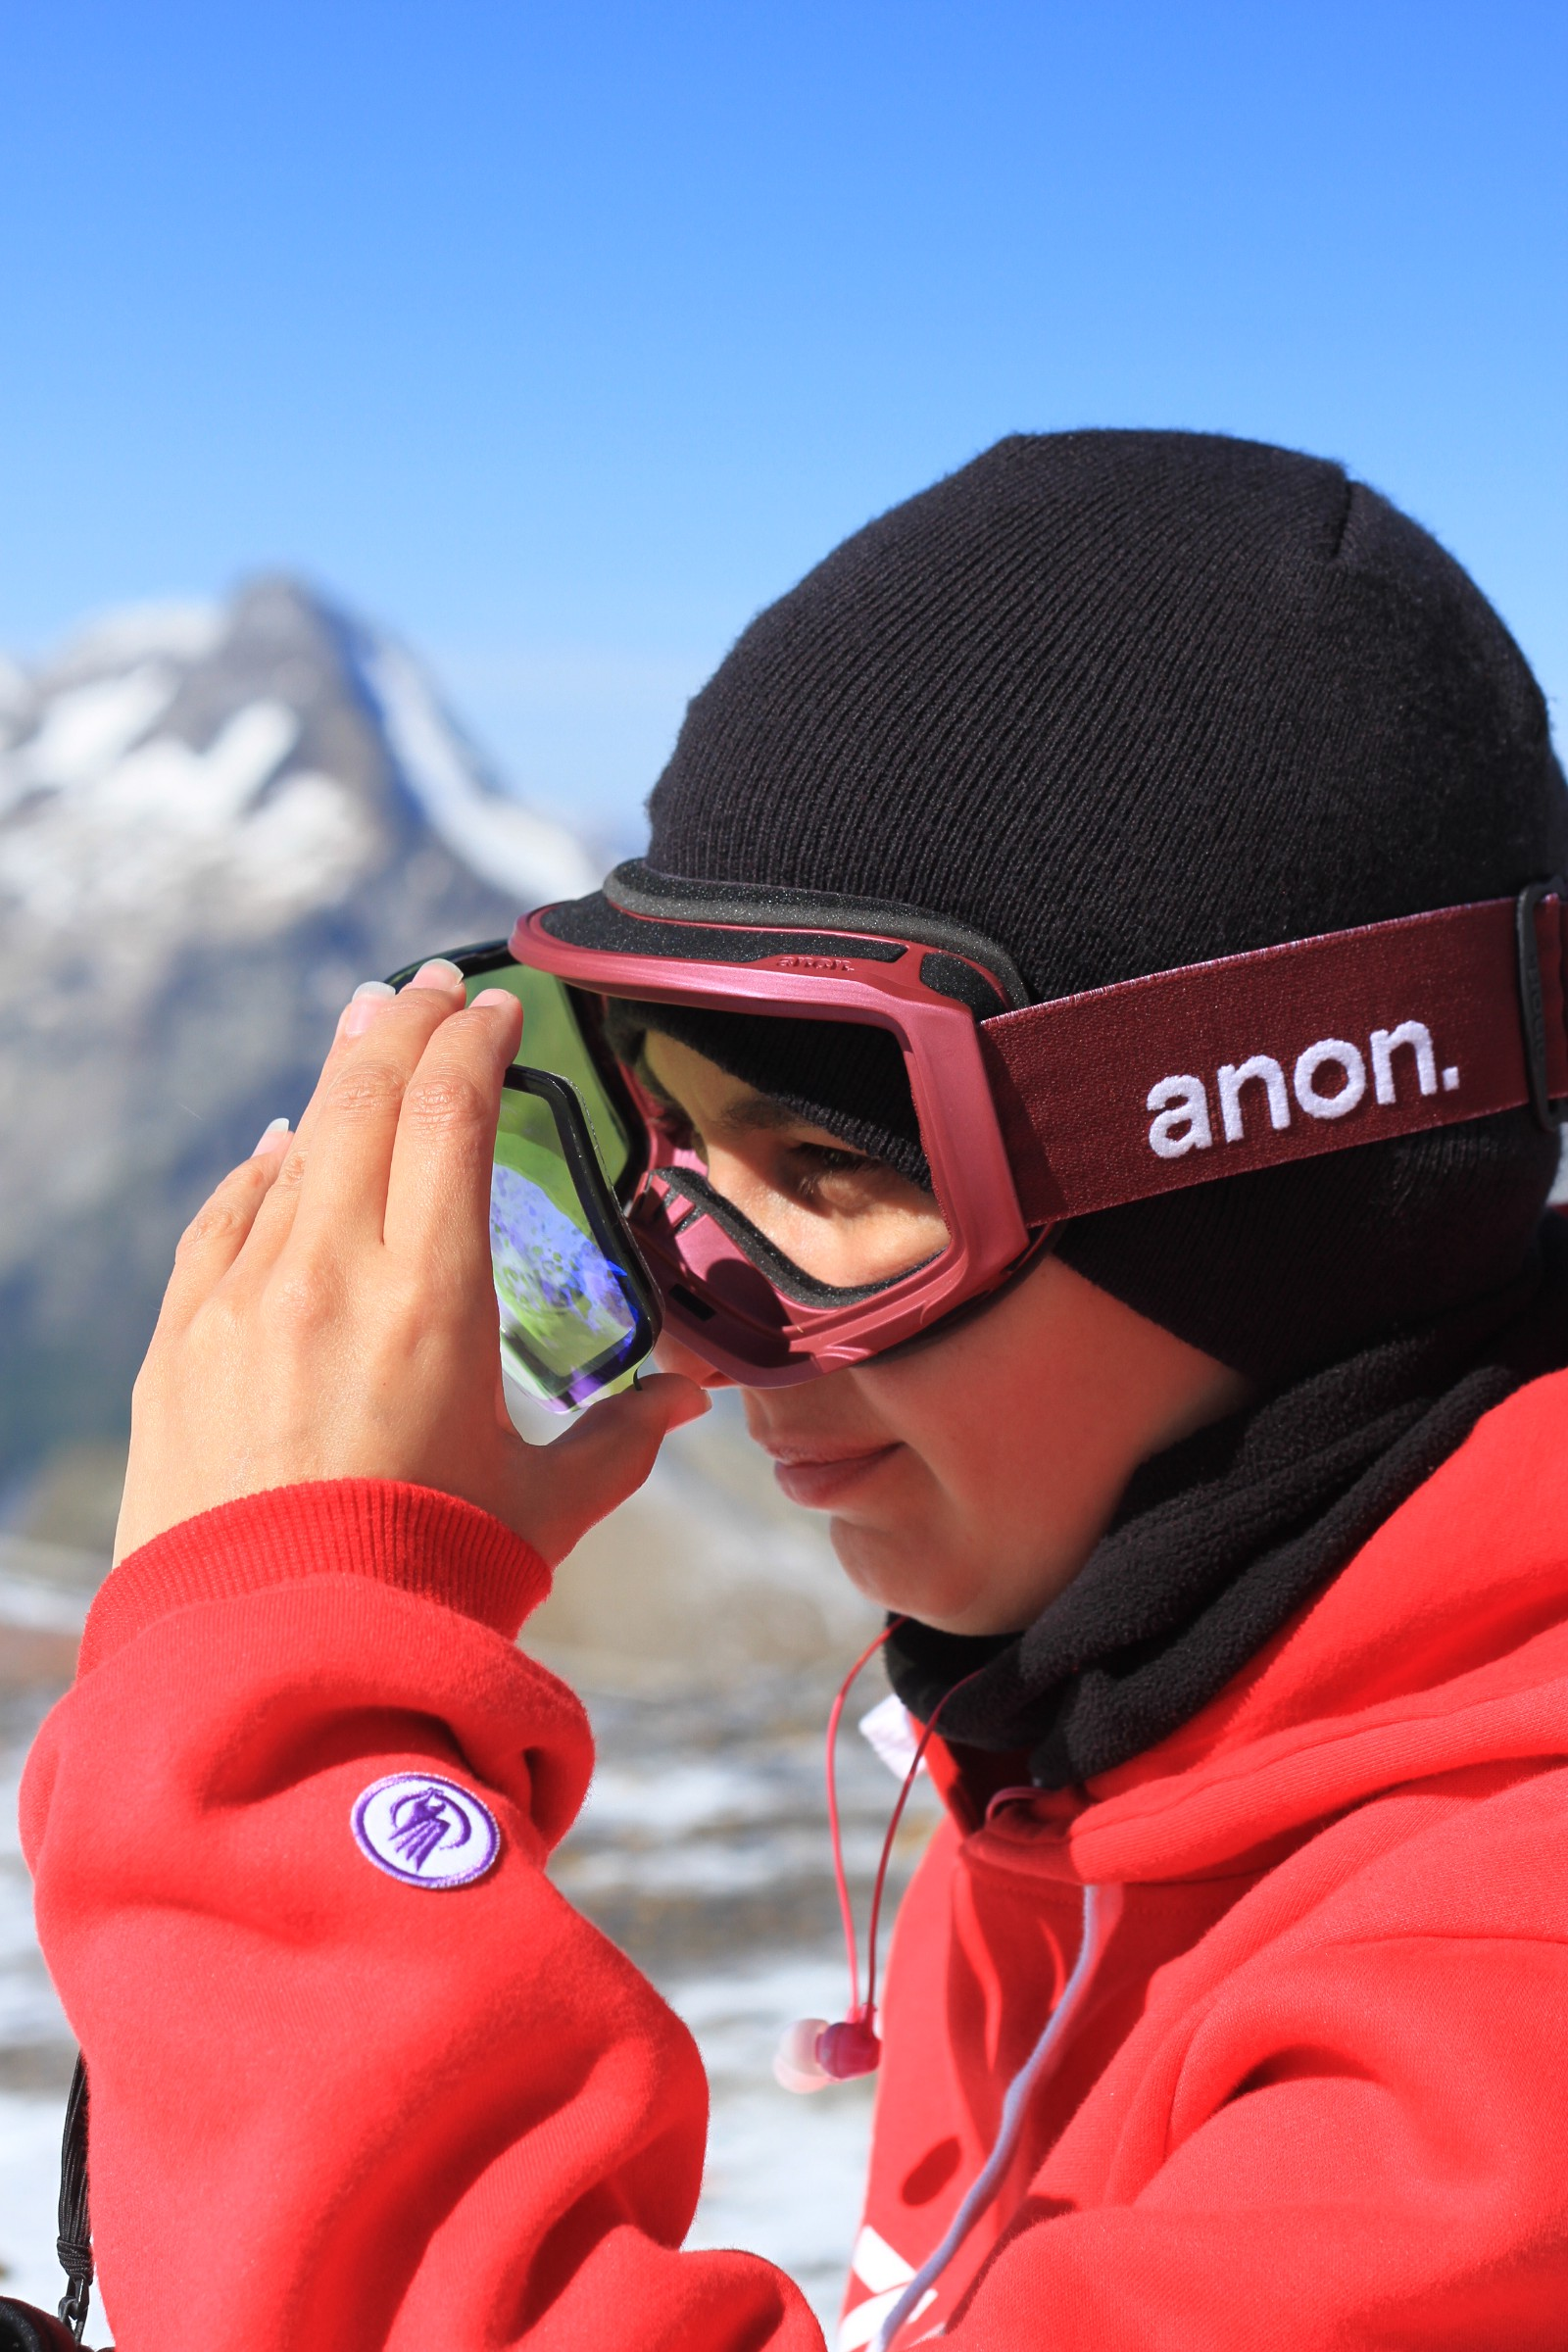 9a0675d79f6 Top tips to avoid goggle issues whilst snowboarding